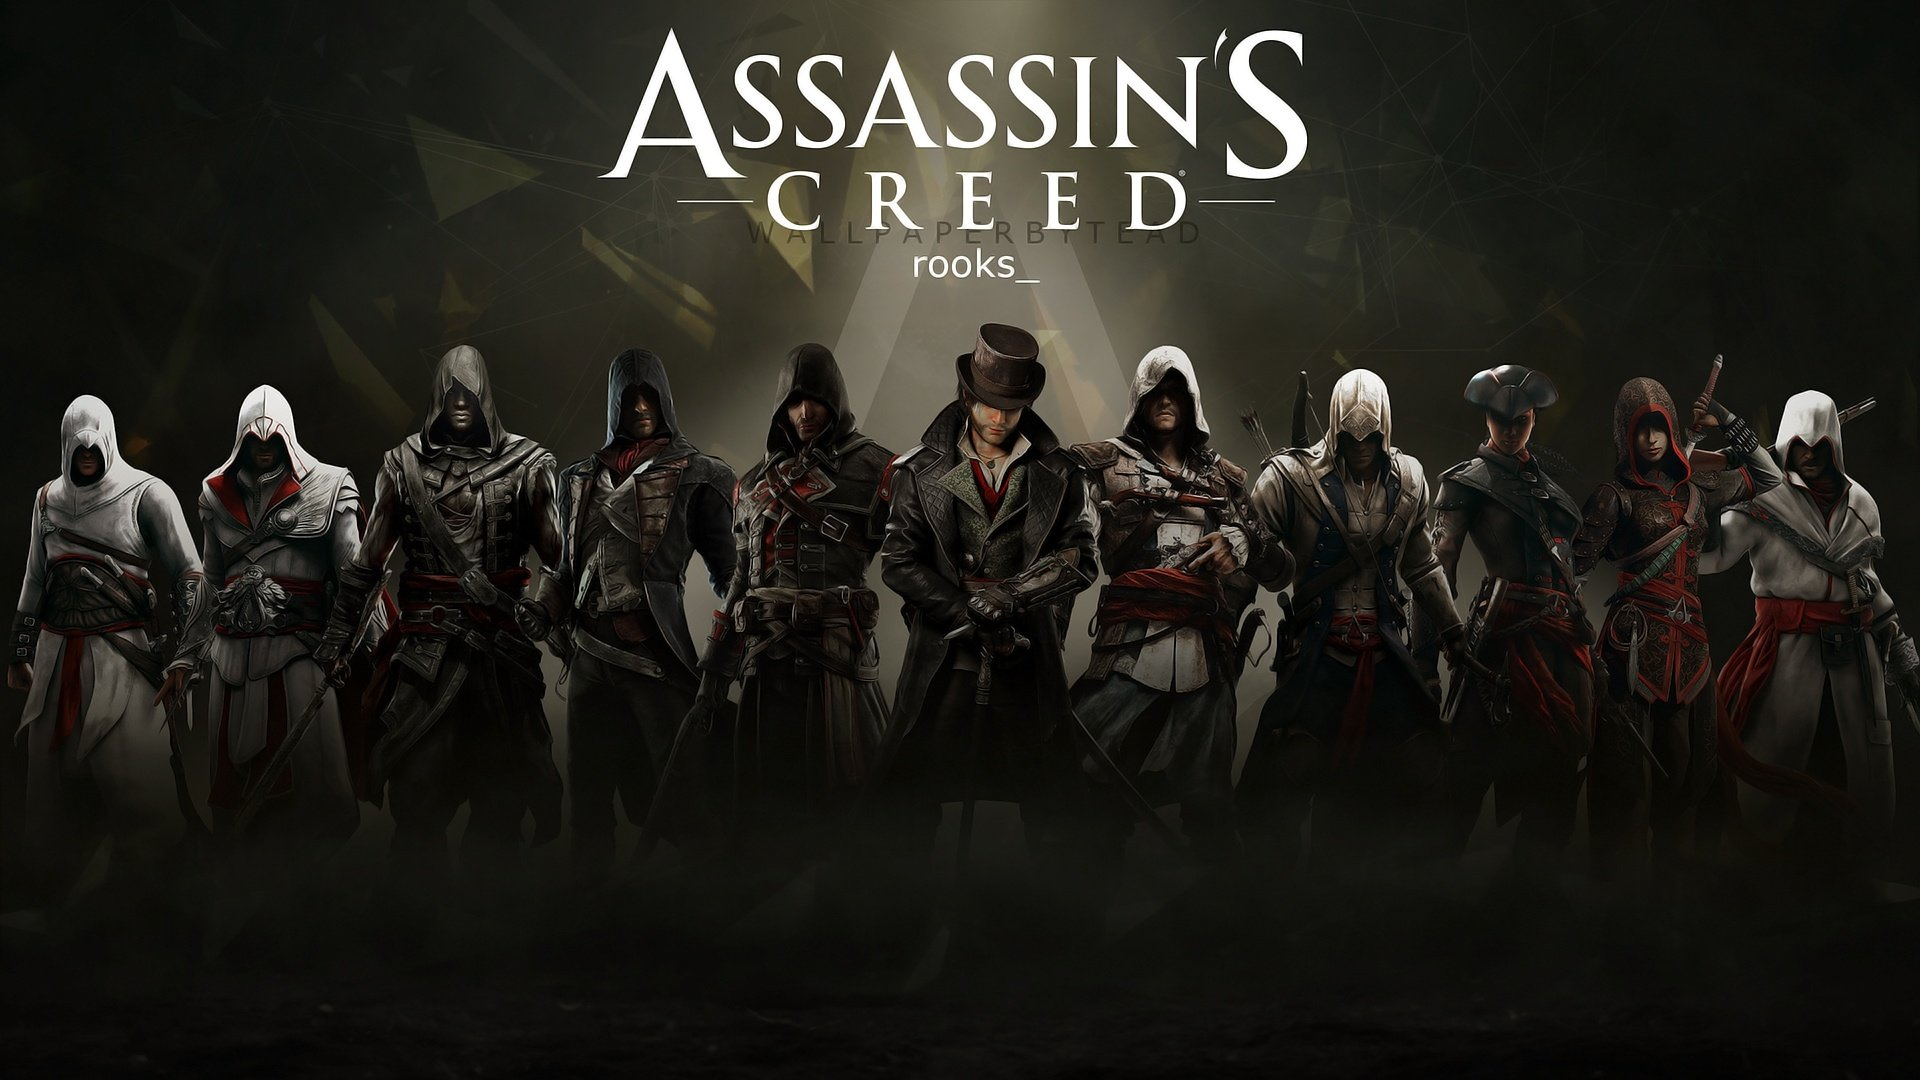 Assassin S Creed Wallpapers Hd For Desktop Backgrounds